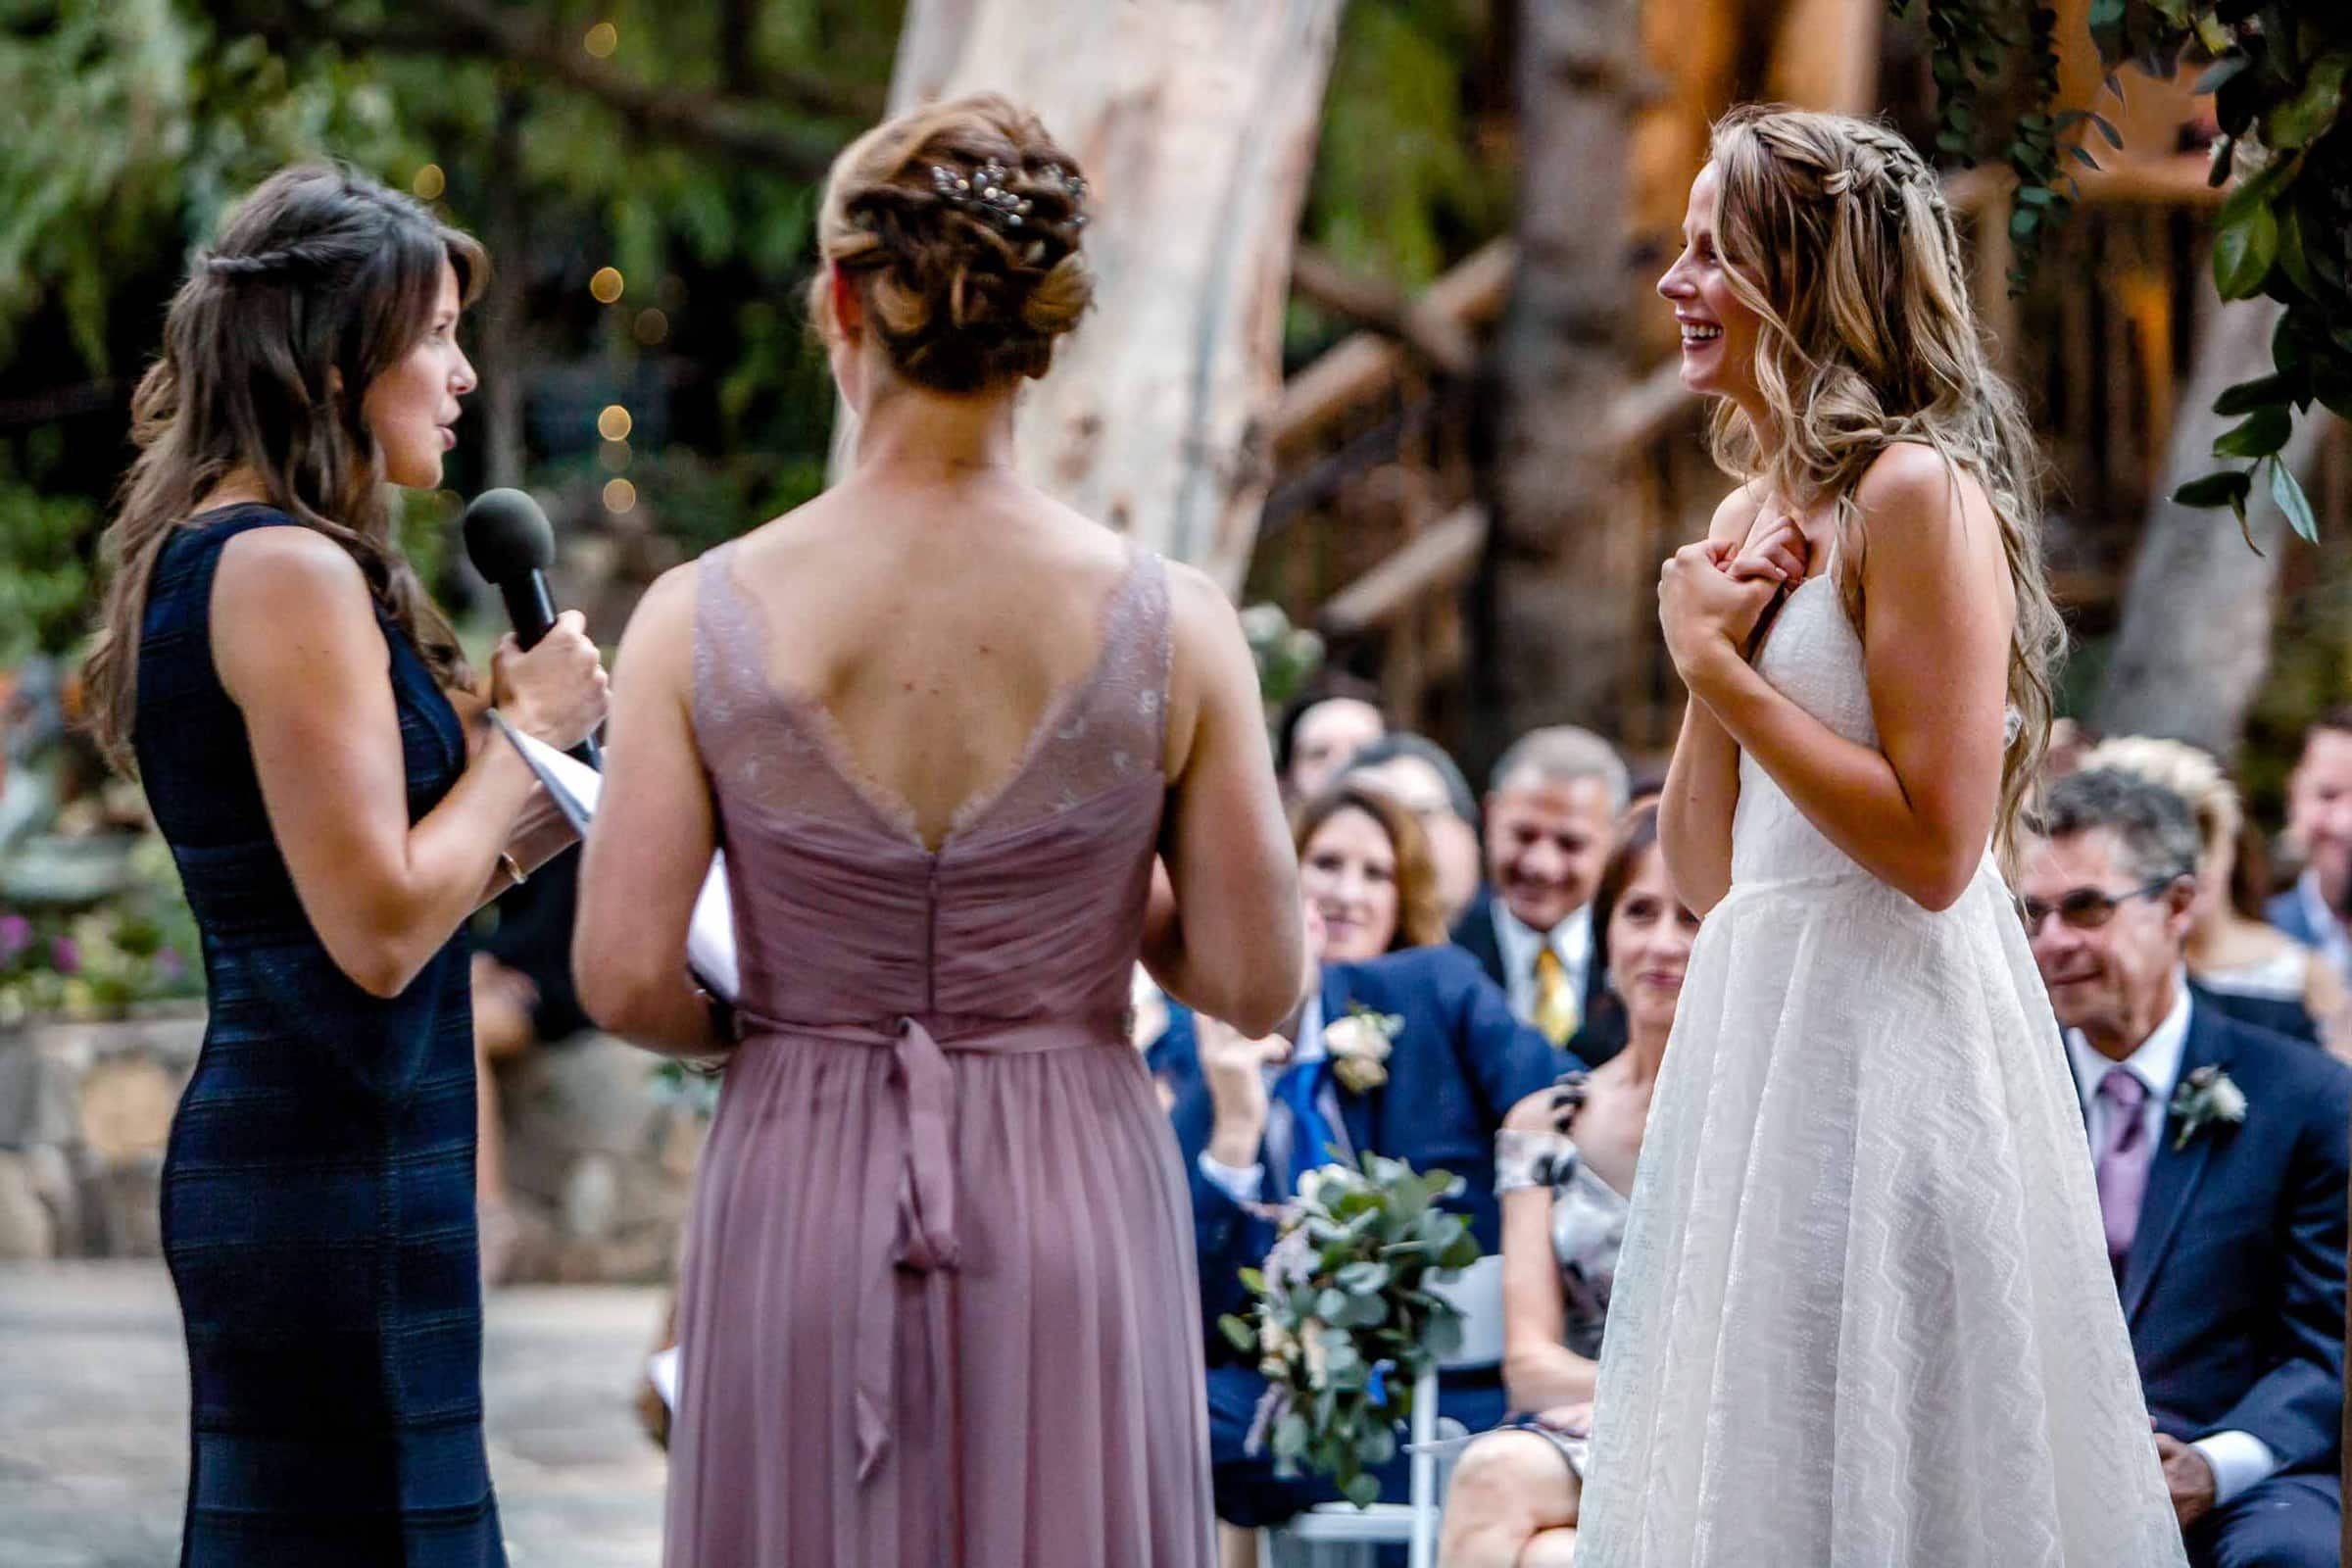 Two brides speaking their hearts to each other in their vows during their Calamigos Ranch Wedding ceremony